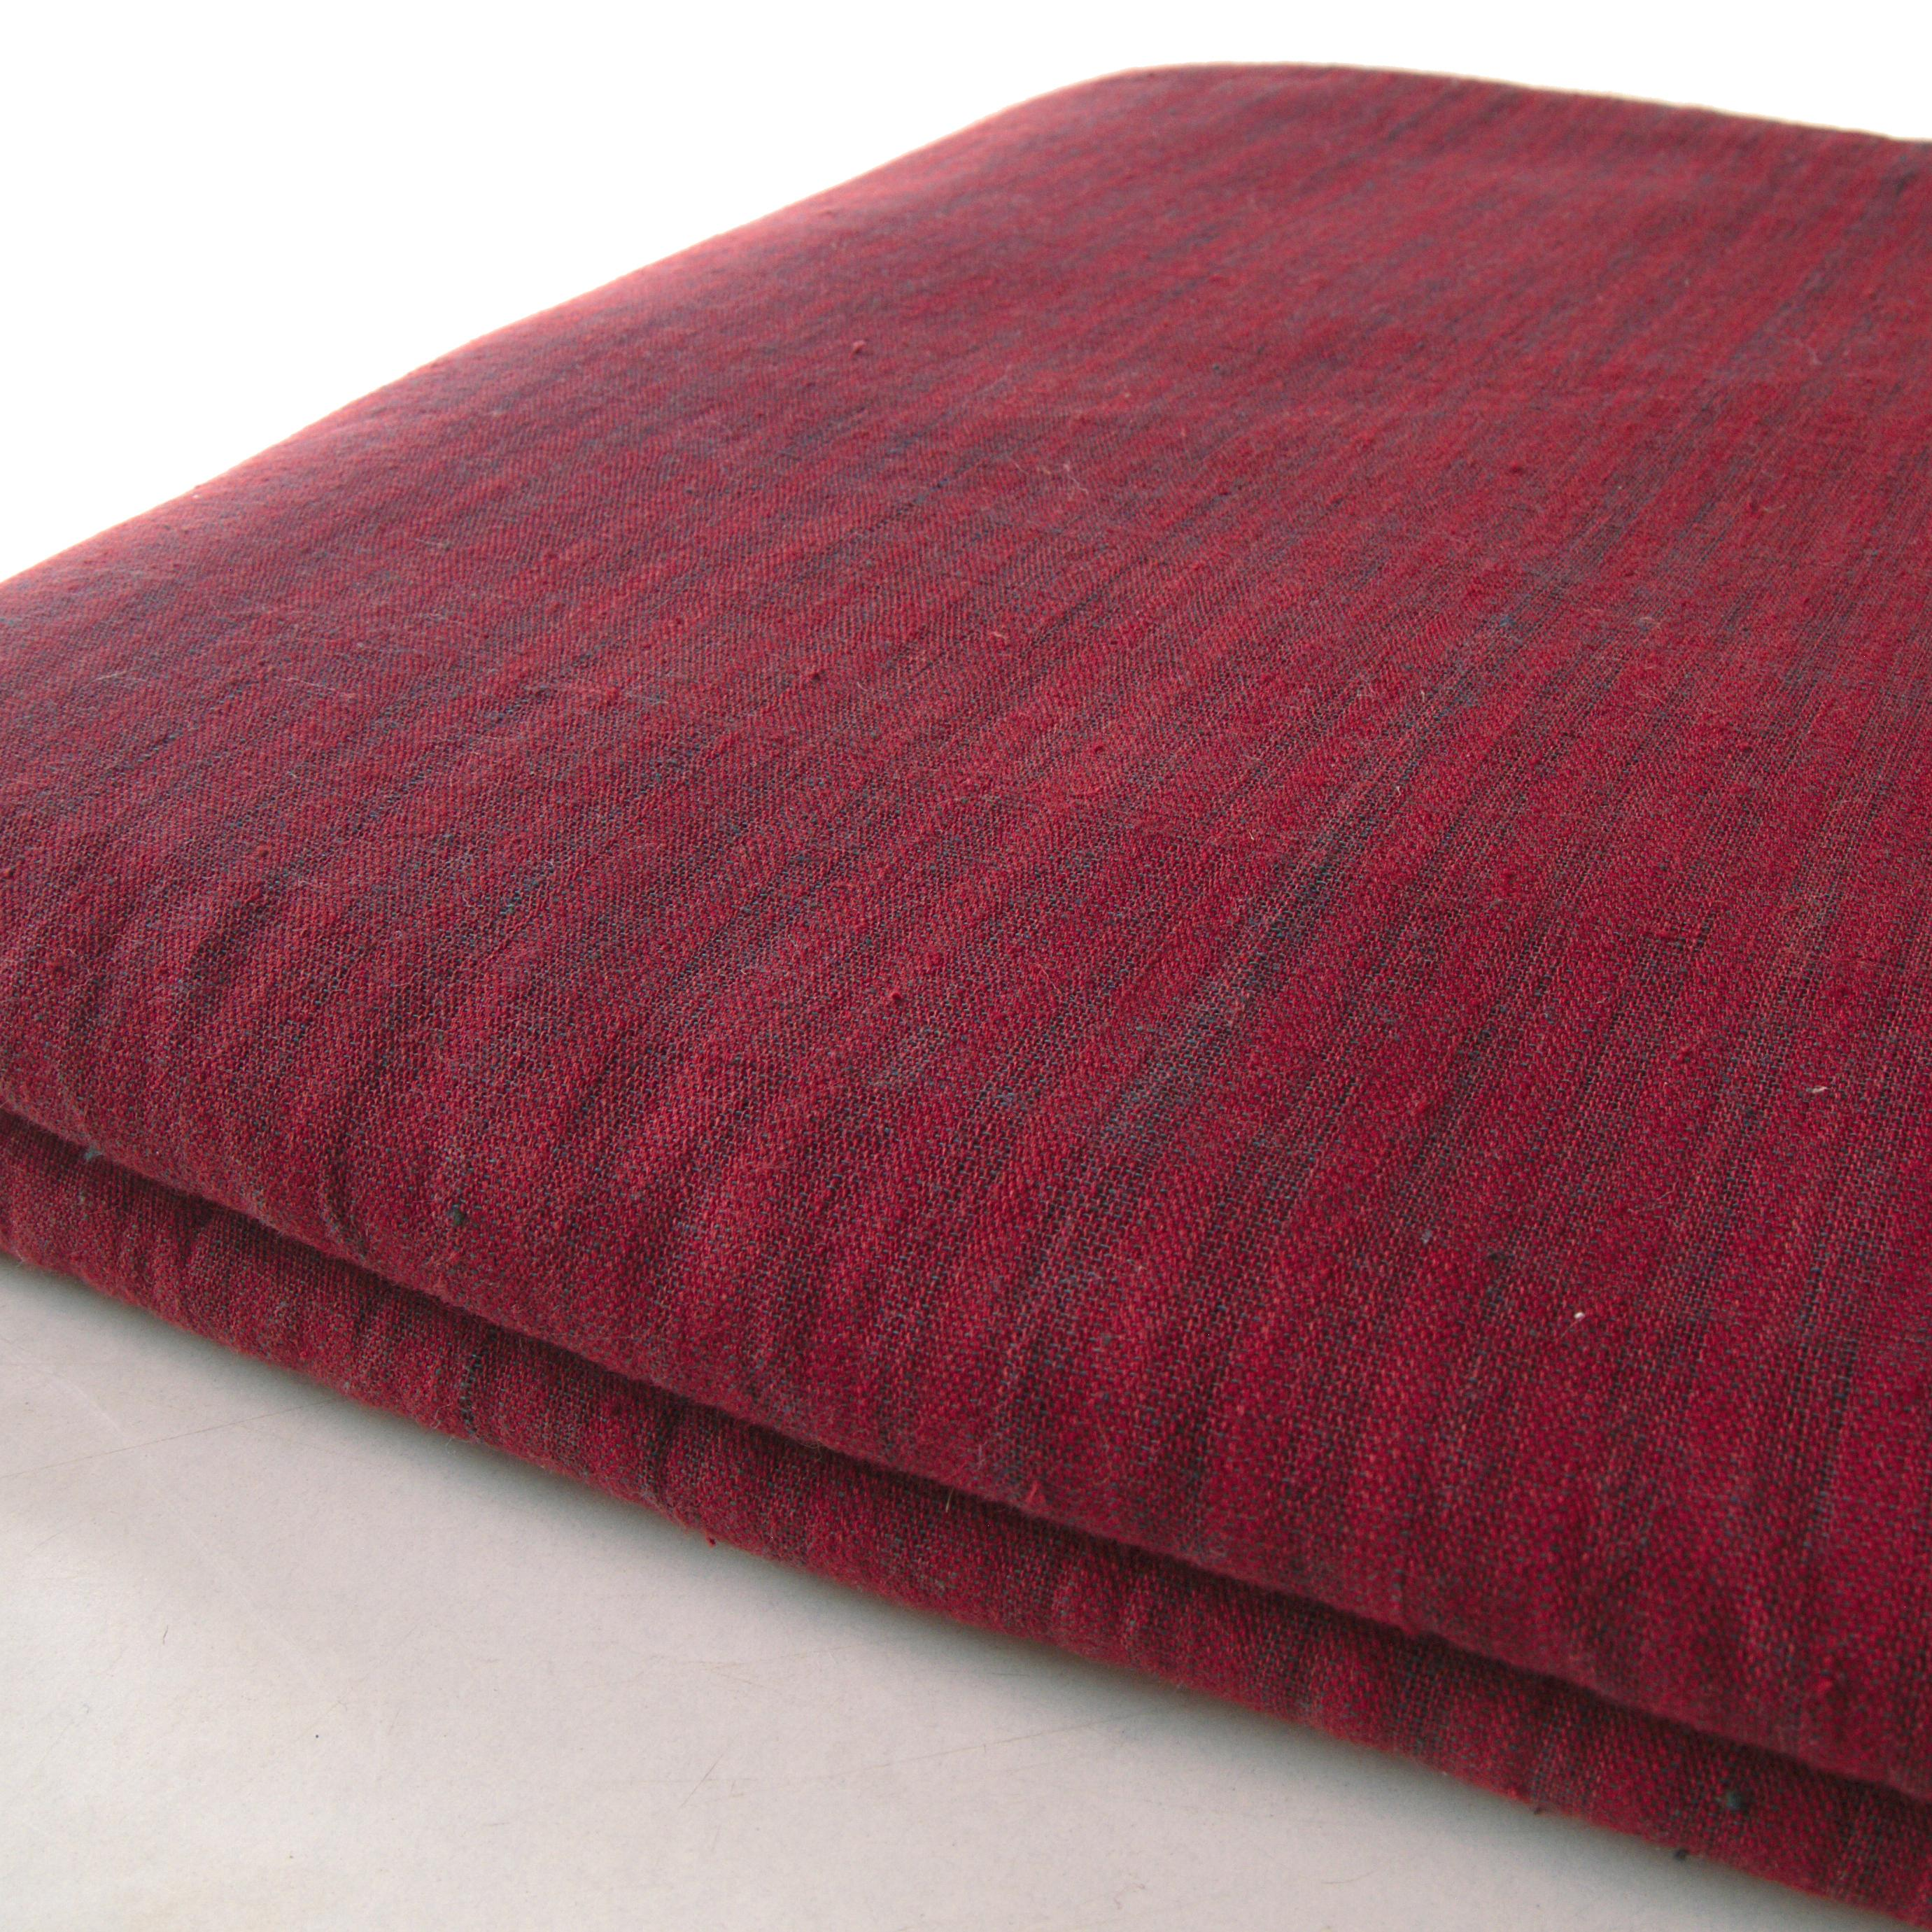 100% Handloom Woven Cotton - Dented Stripes - Red Alizarin Dented Warp, Natural Indigo Green Warp - Bolt